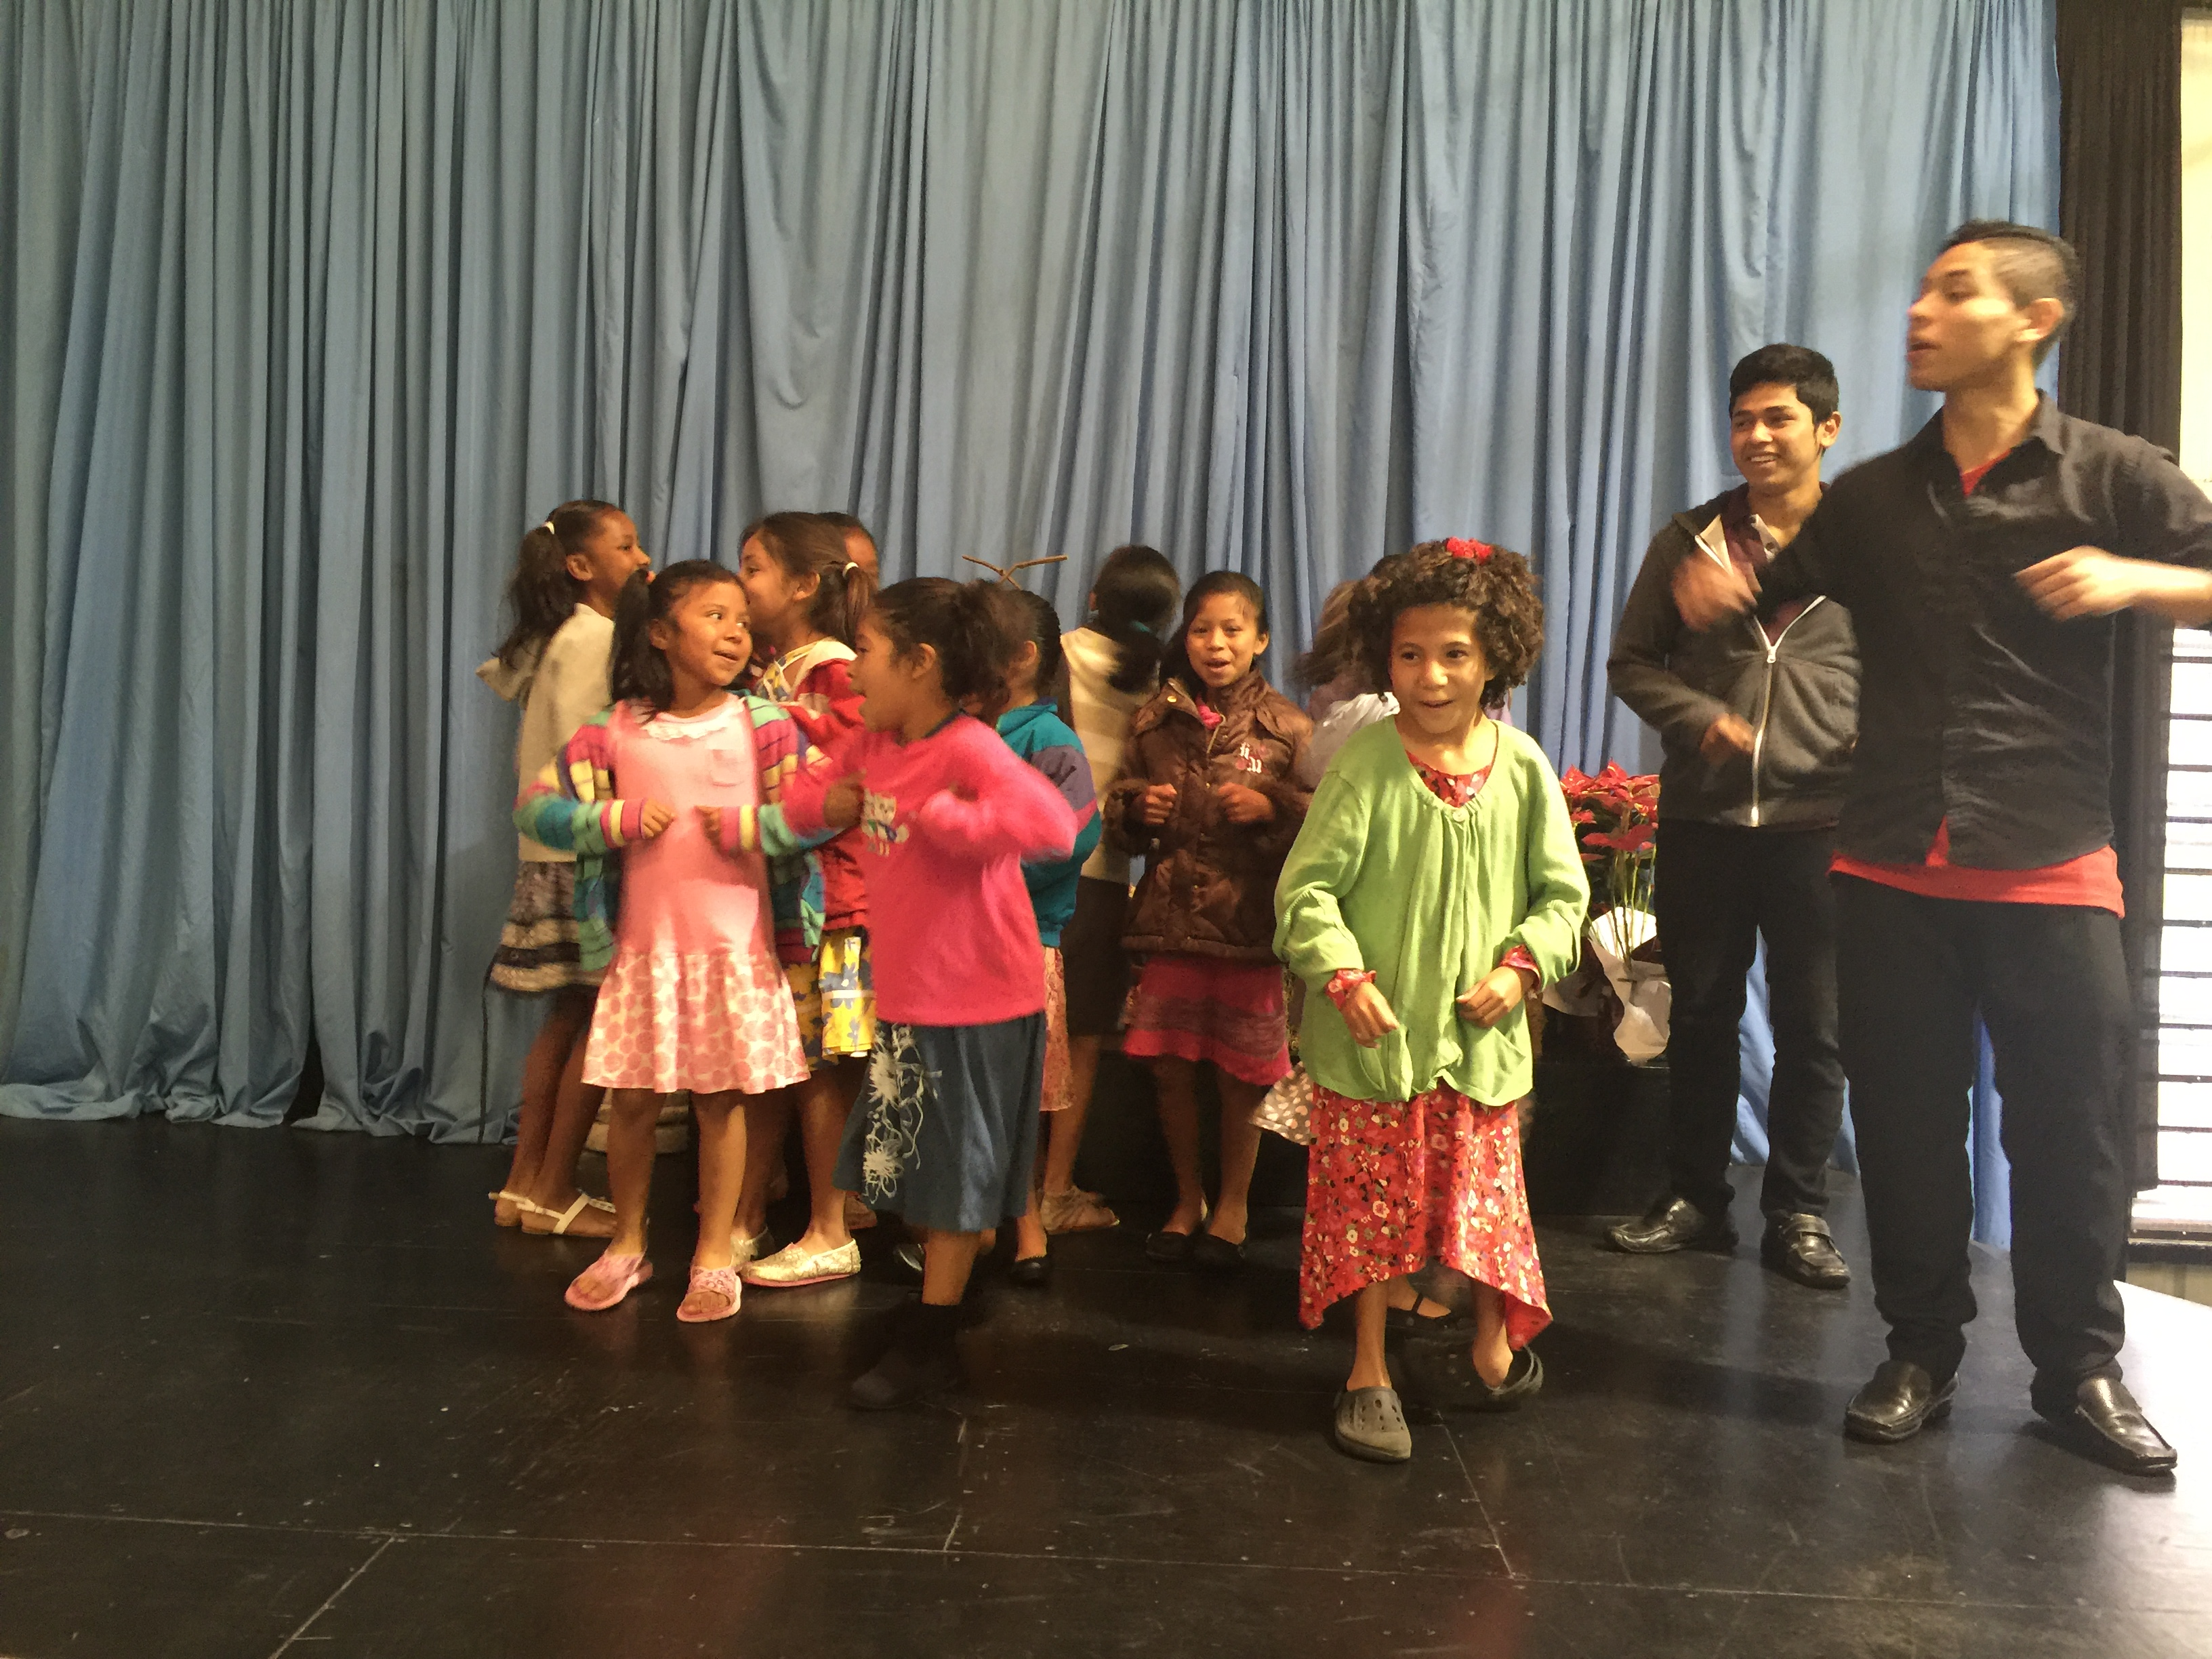 The little girls praising the Lord